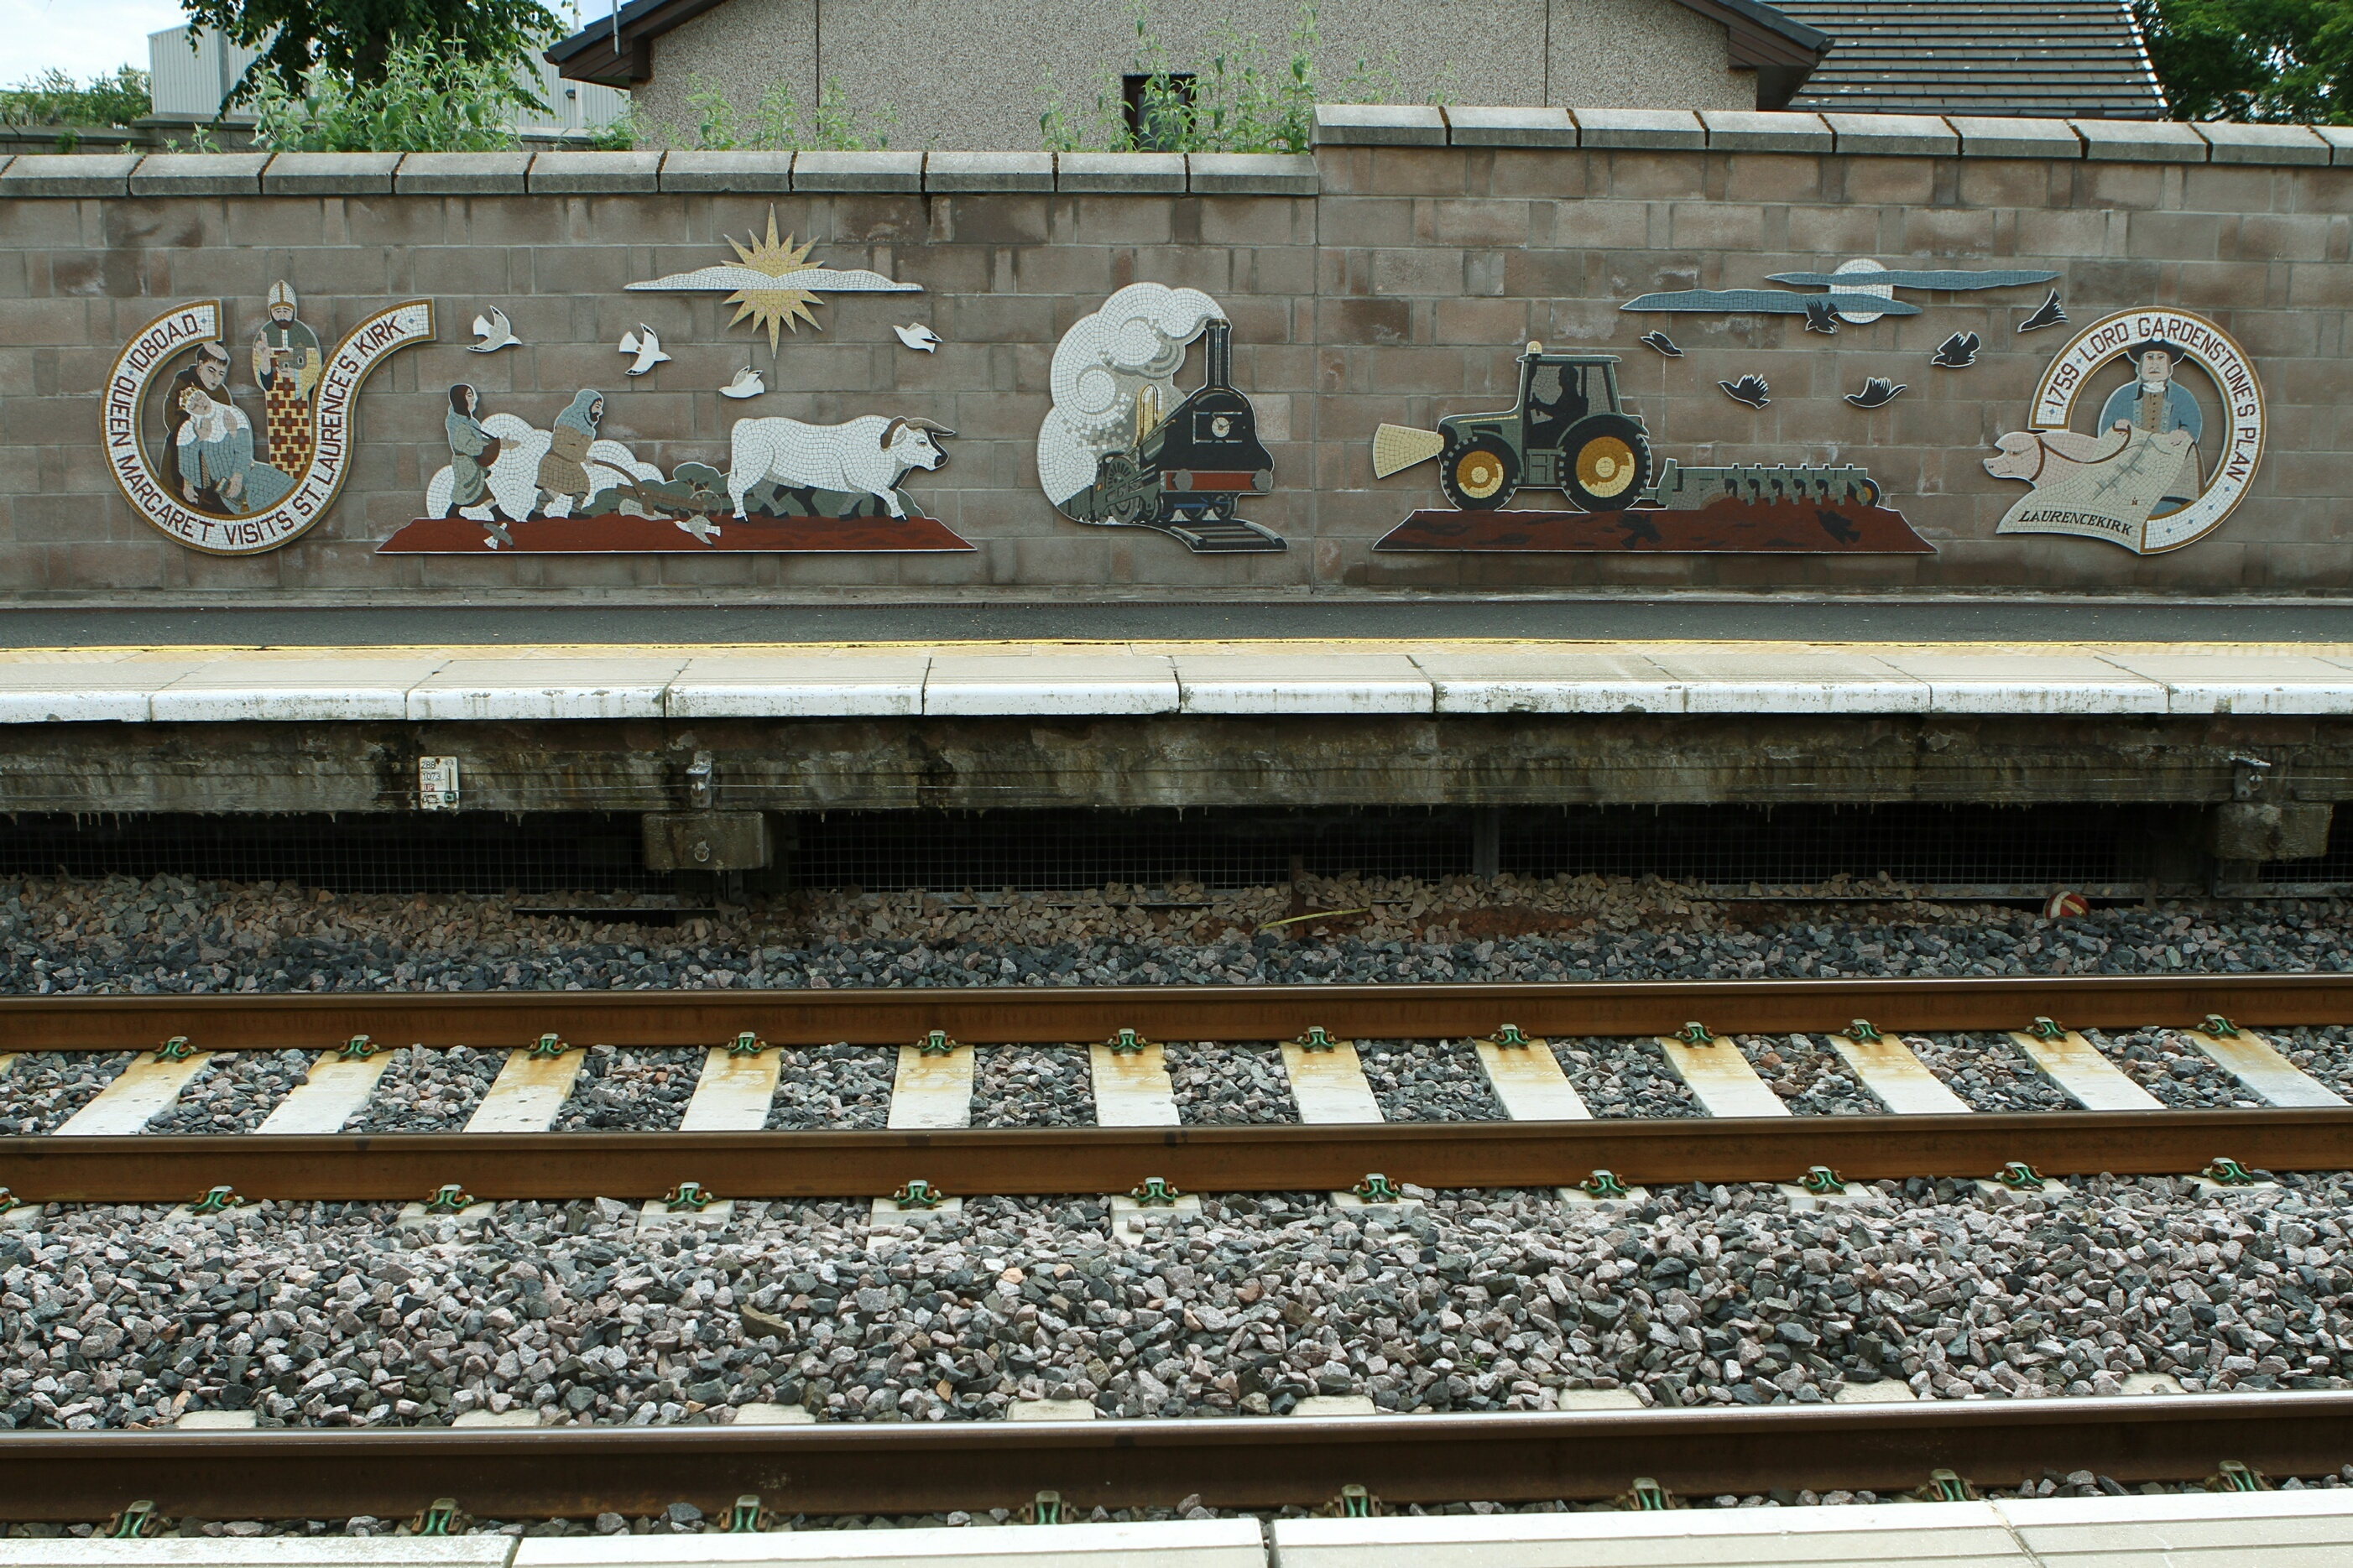 The mosaic by Alan Potter on the platform at Laurencekirk Railway Station, which depicts the heritage of the area.